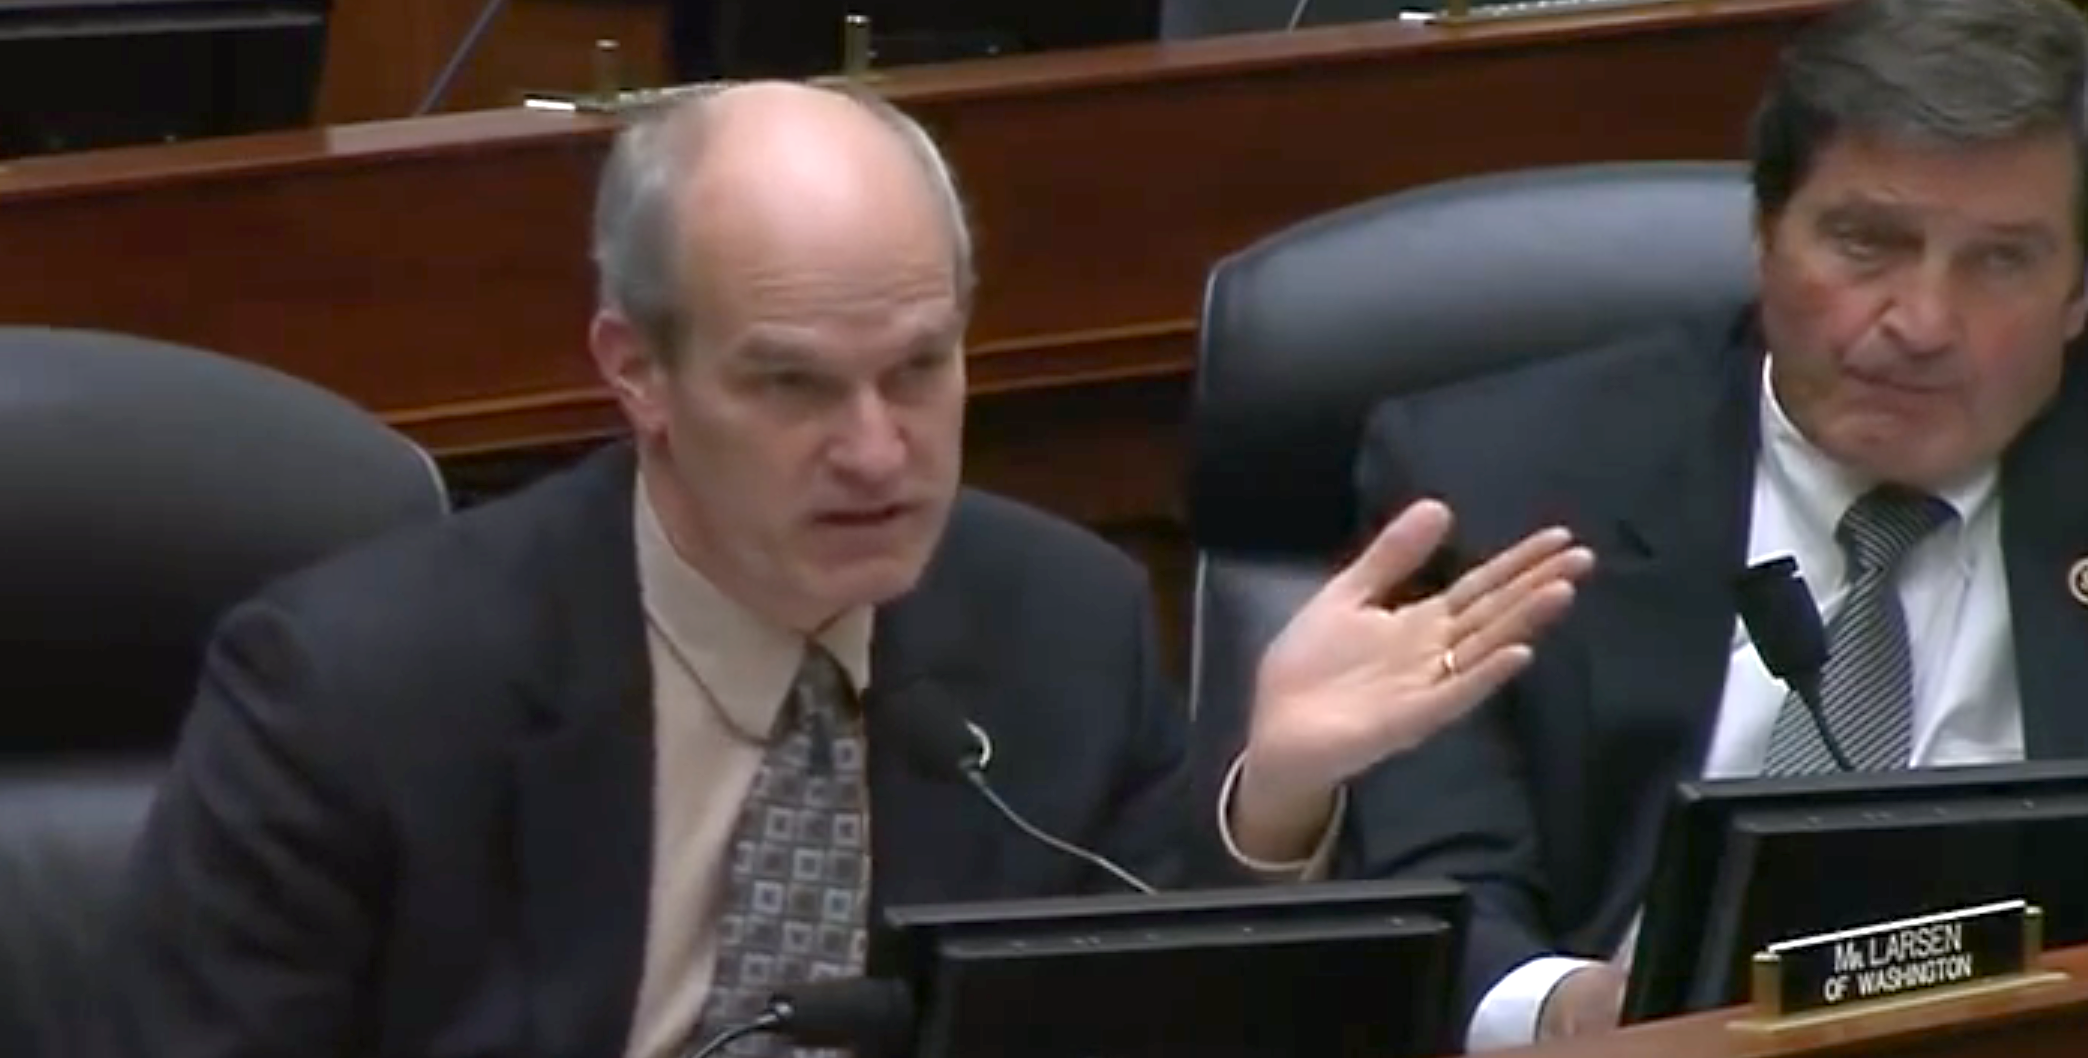 In this video image, Rep. Rick Larsen (D-Wash.) speaks at a February 26 hearing of the House Armed Services Strategic Forces Subcommittee. At the hearing, Larsen asked about a budget estimate made last year by U.S. Strategic Command. (House Armed Services)